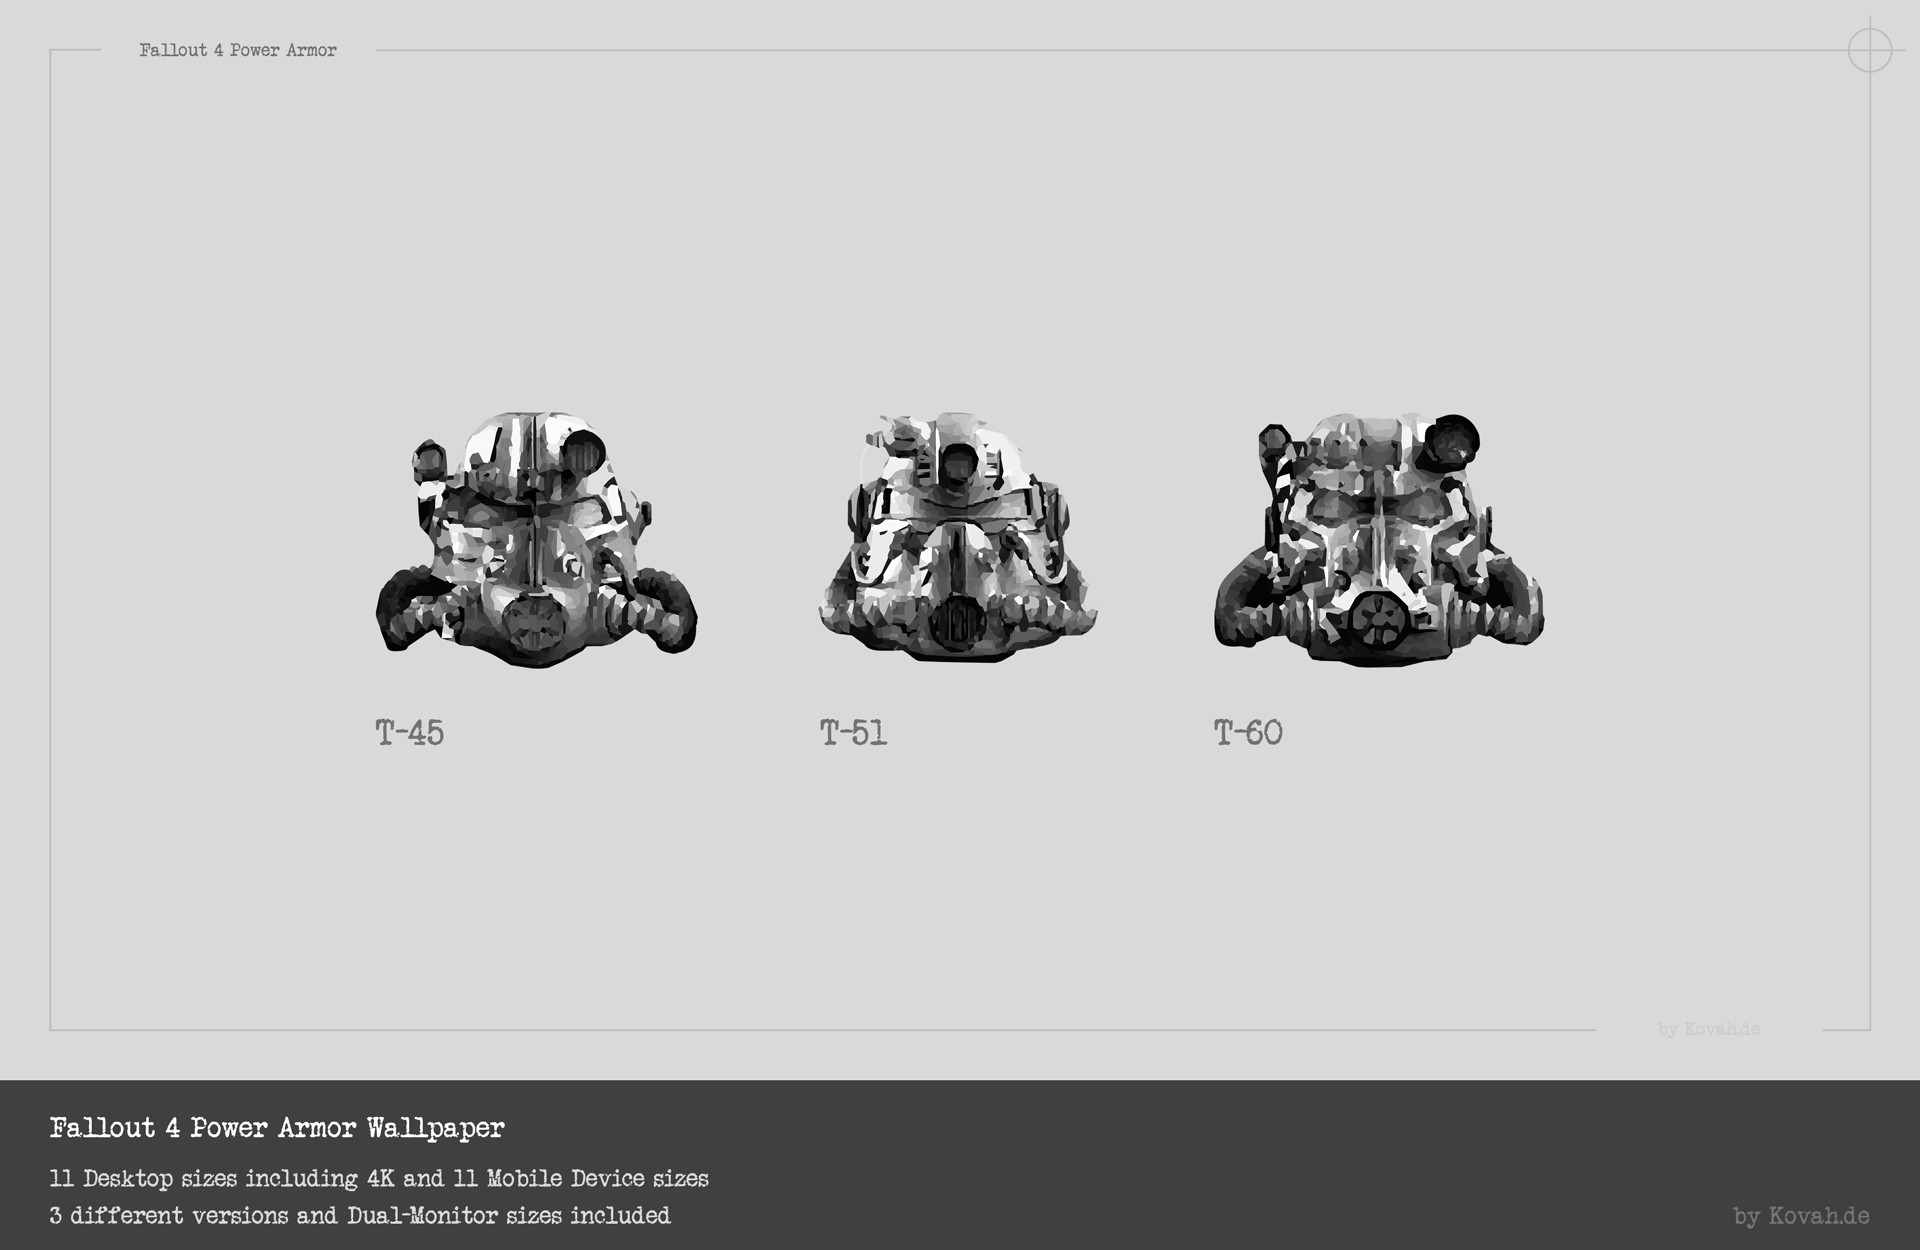 … Fallout 4 Power Armor Wallpaper by theKovah